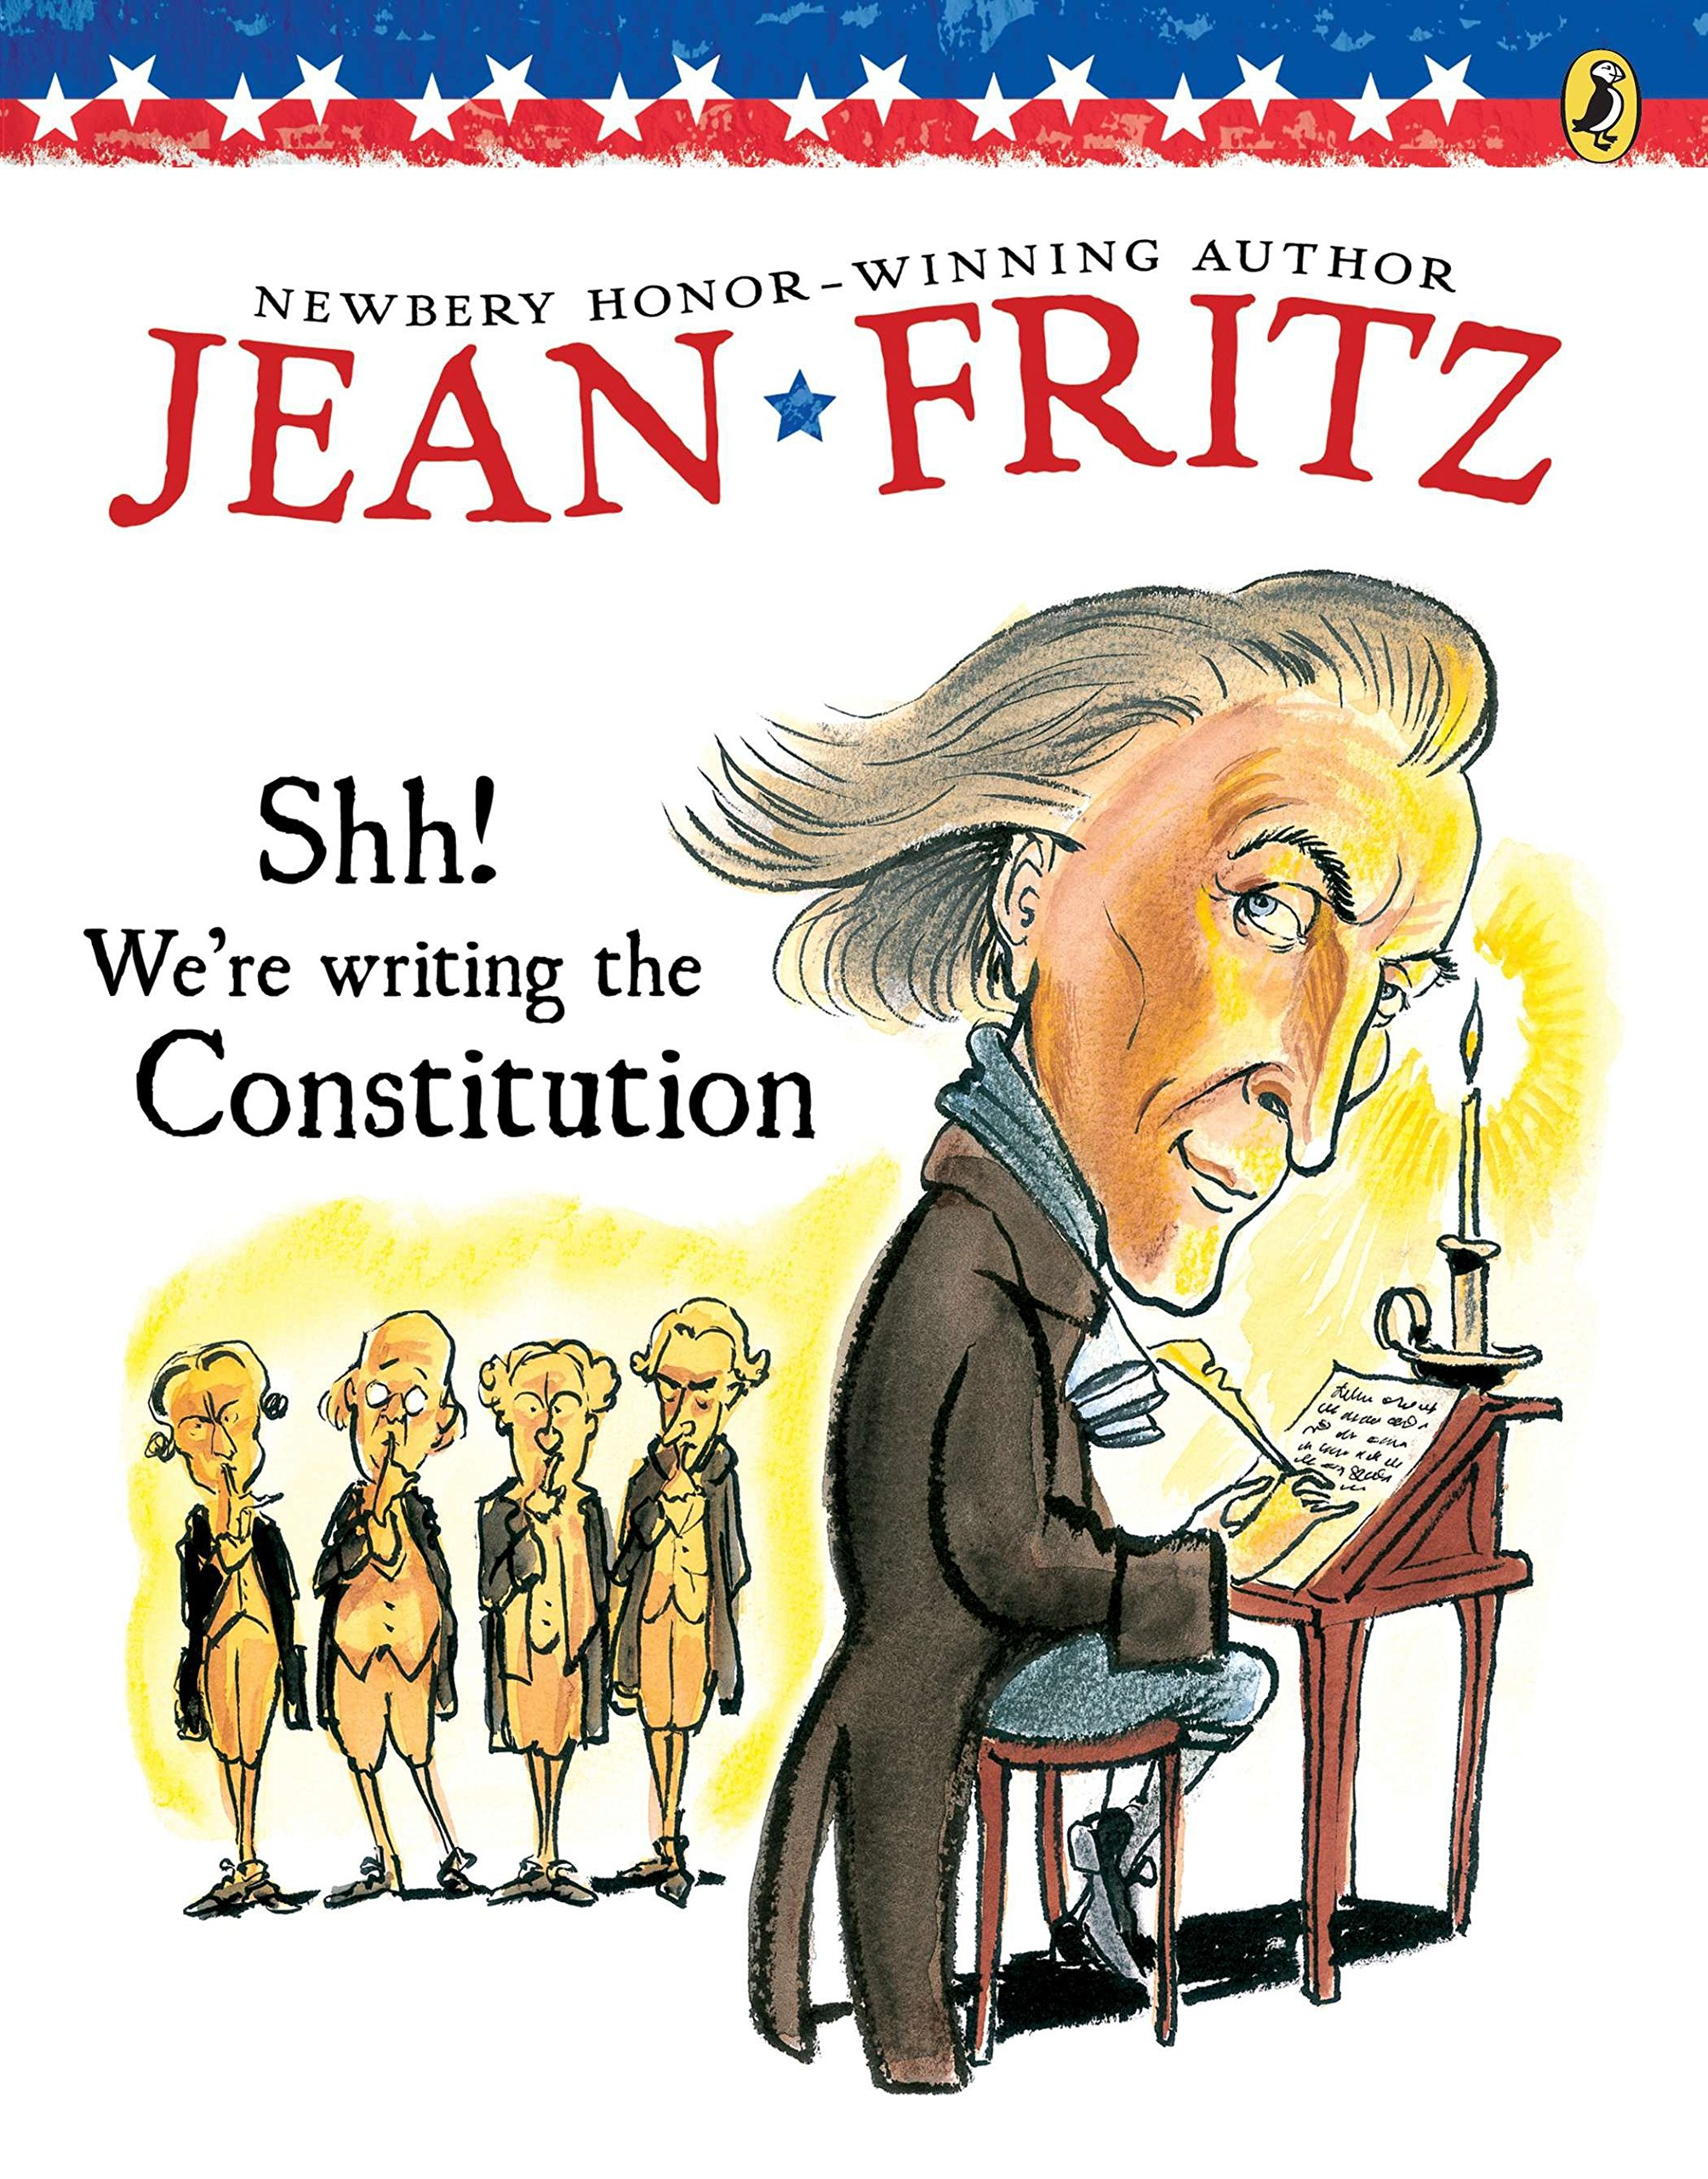 Shh! We're Writing the Constitution Paperback – December 29, 1997 Jean Fritz Tomie dePaola Puffin Books 0698116240